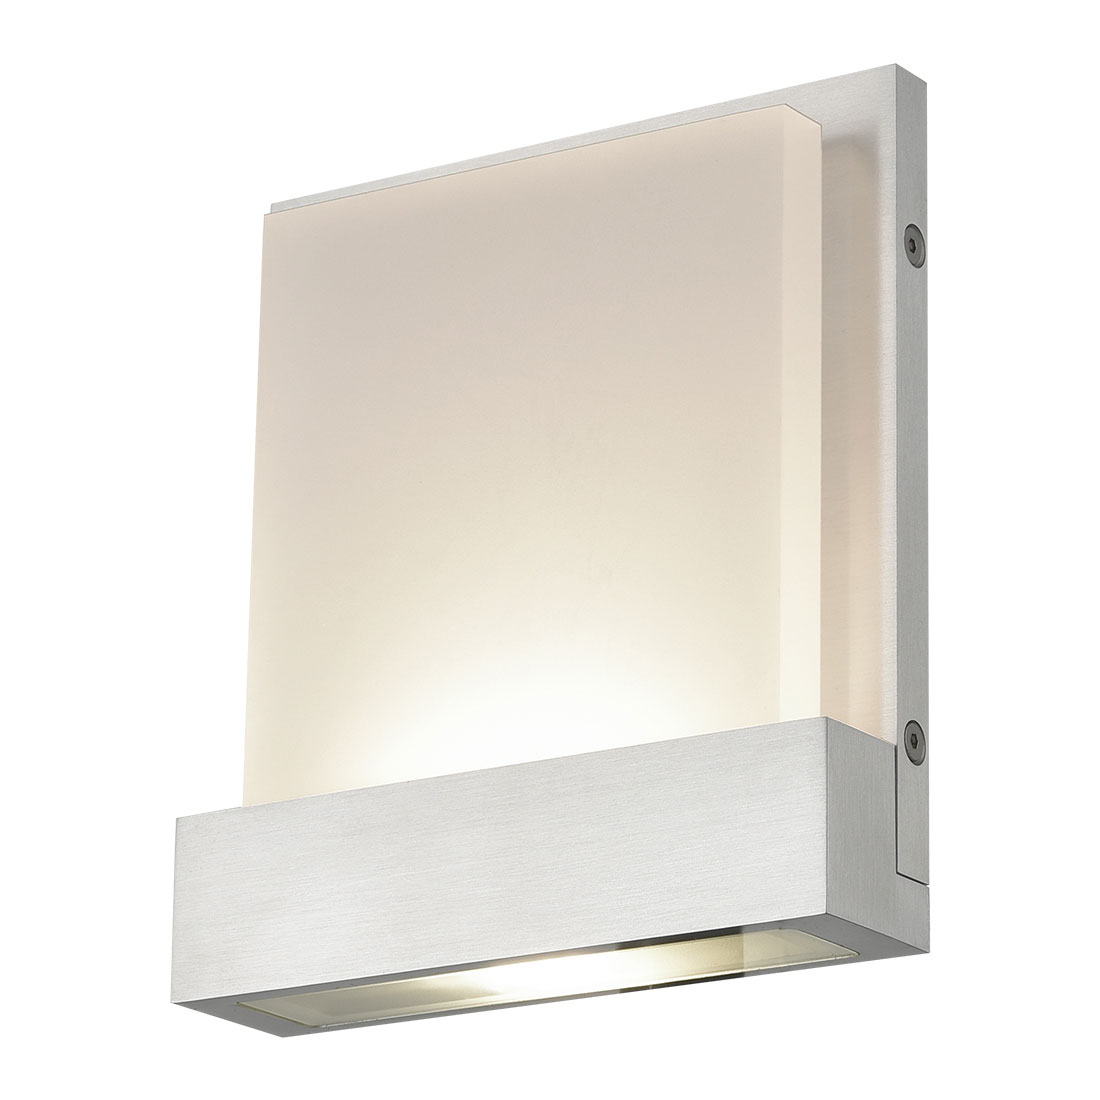 new style eb4c2 04ca9 Guide Wall Sconce by Kuzco Lighting | WS33407-BN